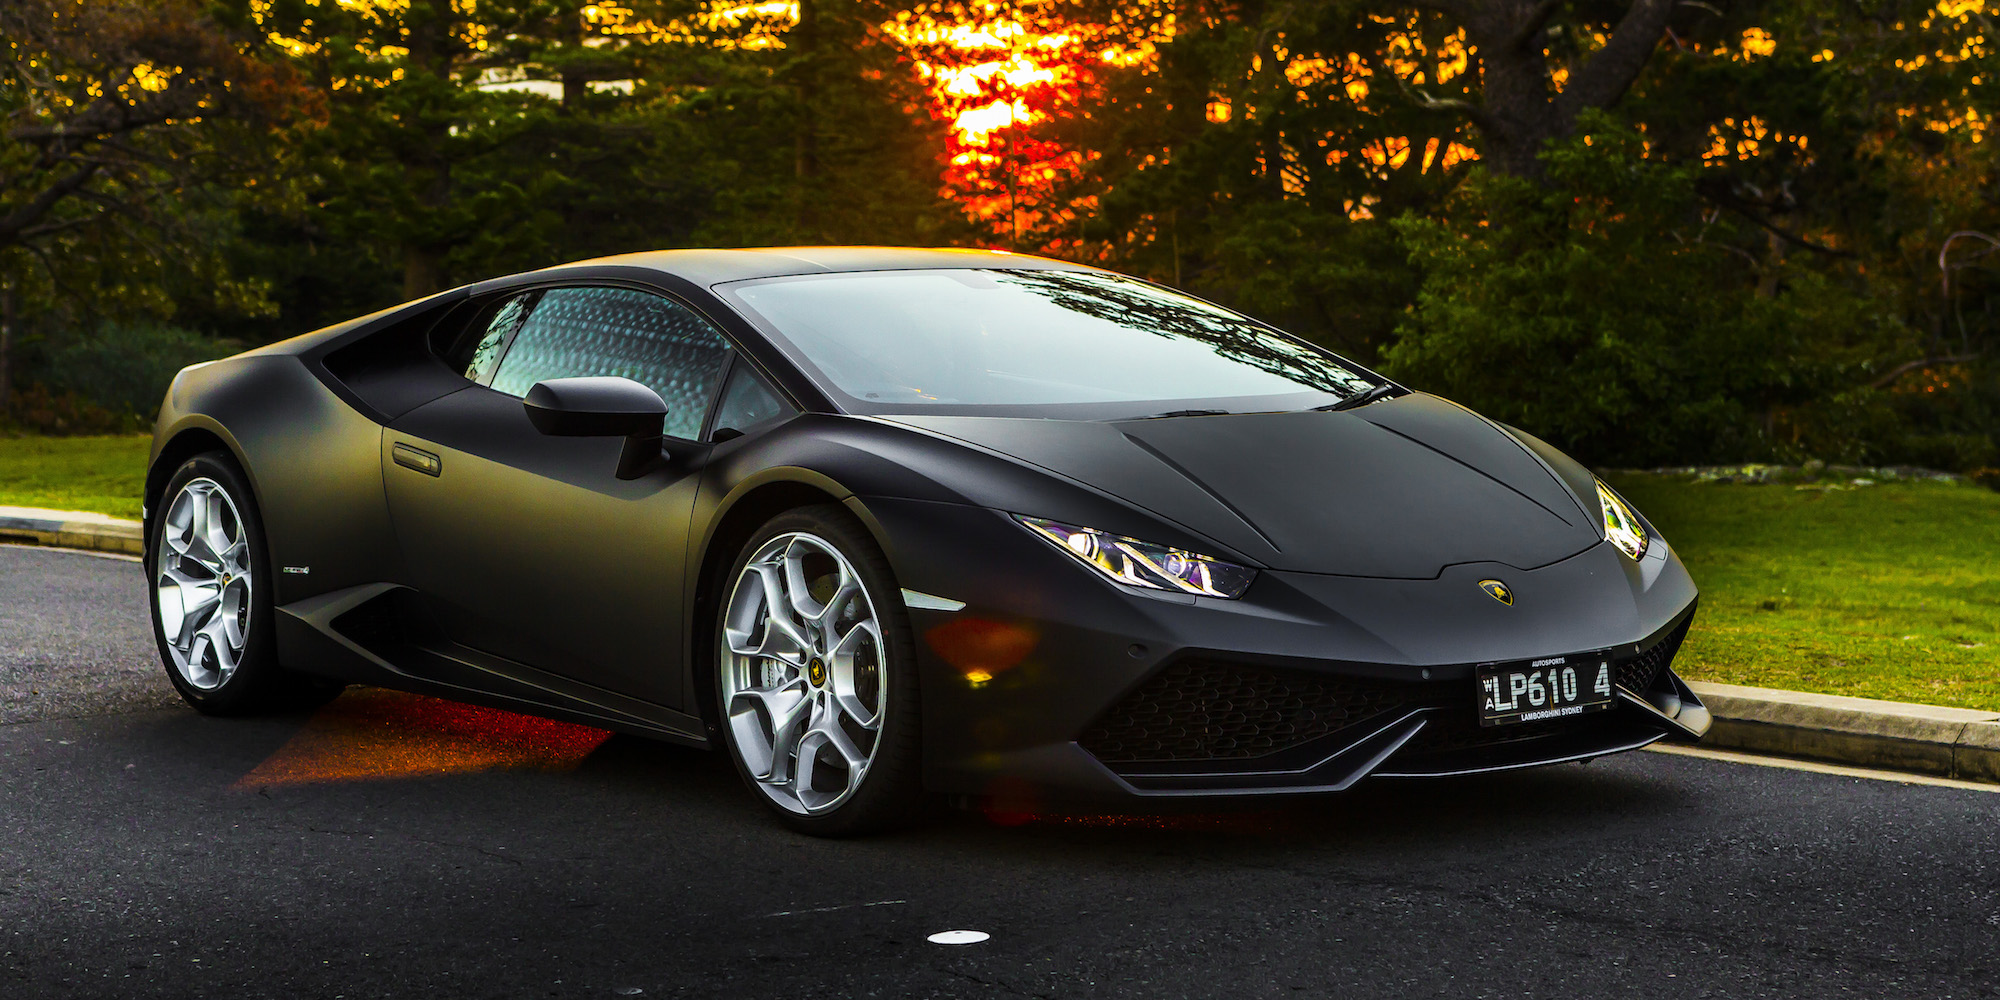 2015 lamborghini huracan lp610 4 review caradvice. Black Bedroom Furniture Sets. Home Design Ideas